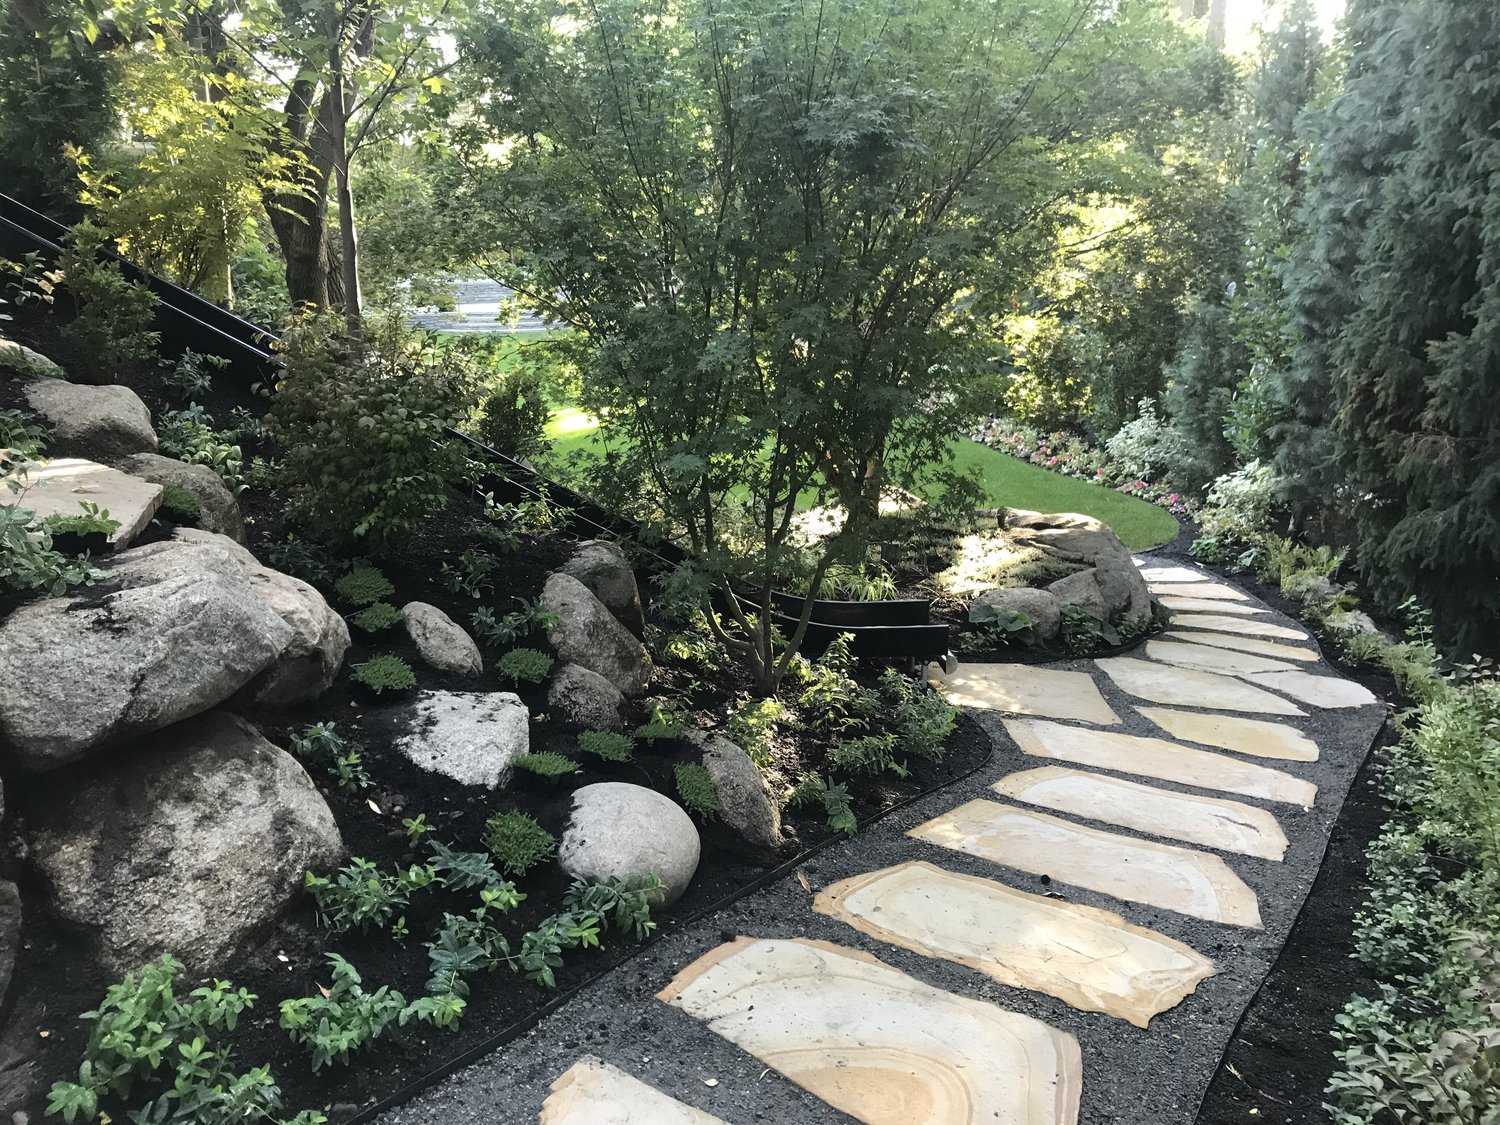 All The Cove Park City Avenues Sugarhouse Millcreek Holladay Sandy East  Bench Silver Summit The Preserve The Colony - Millcreek — Kappus Landscape Sprinkler LLC